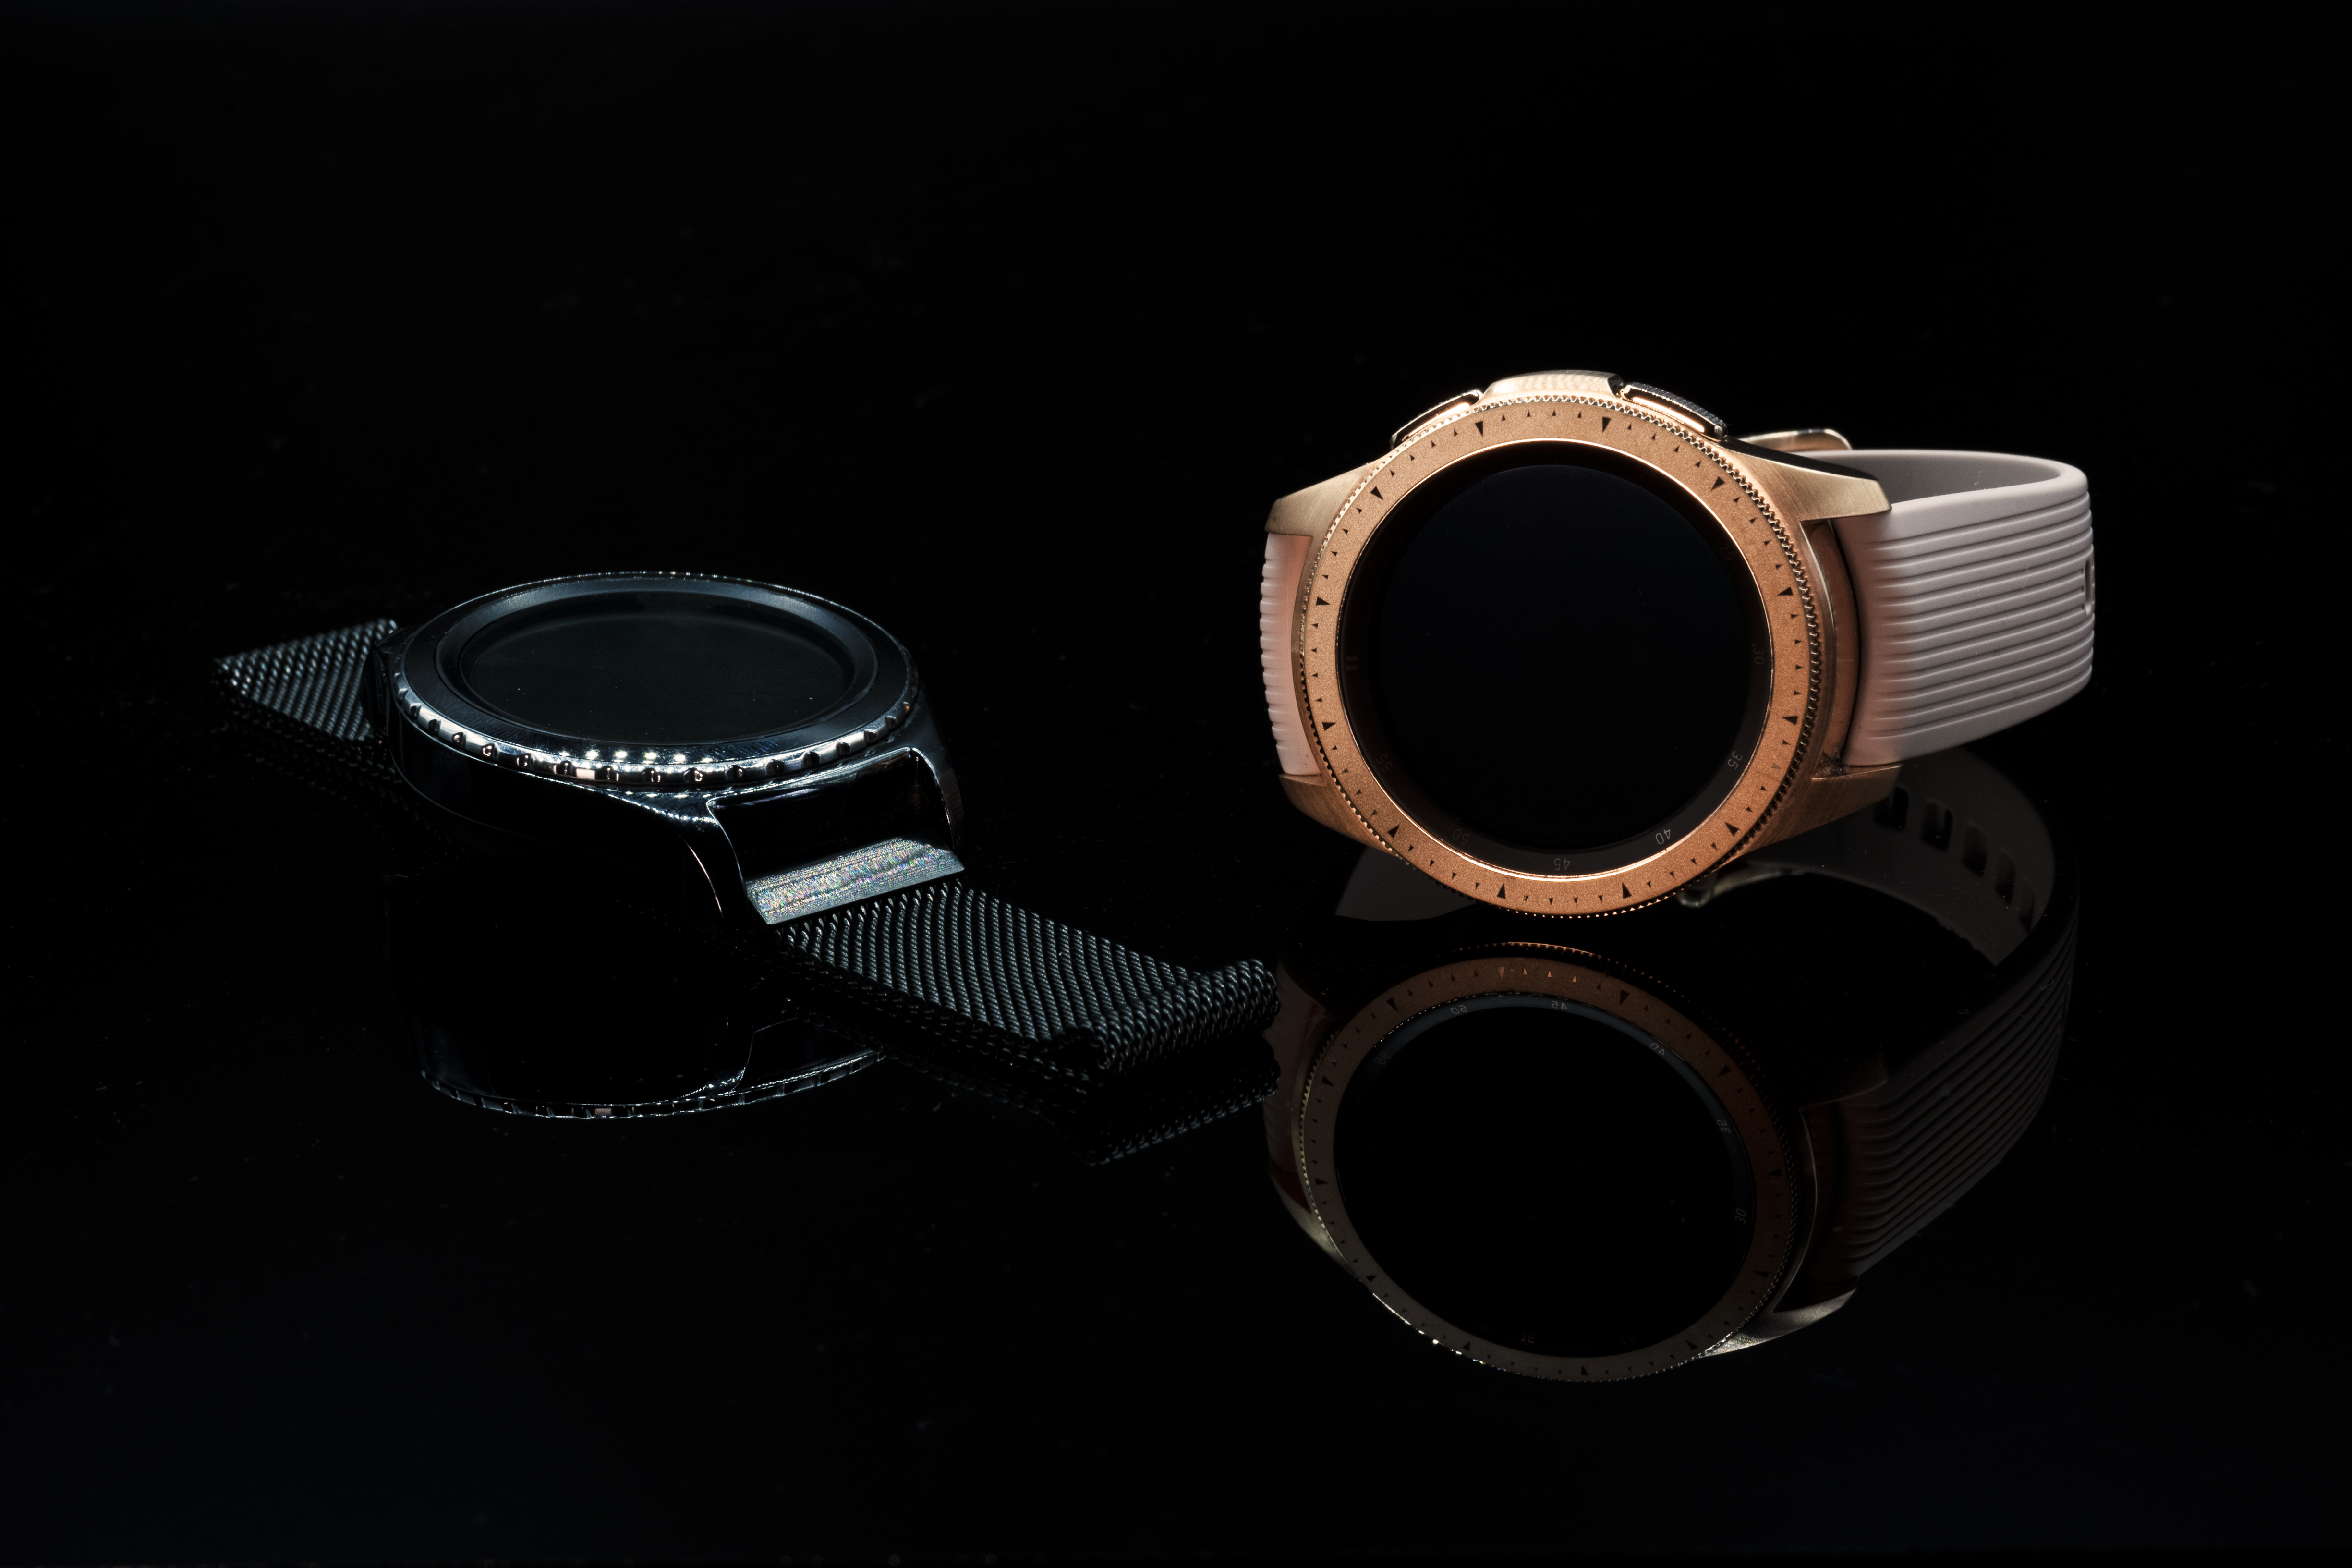 Product photography for jewelry such as watches by The Portland Company.